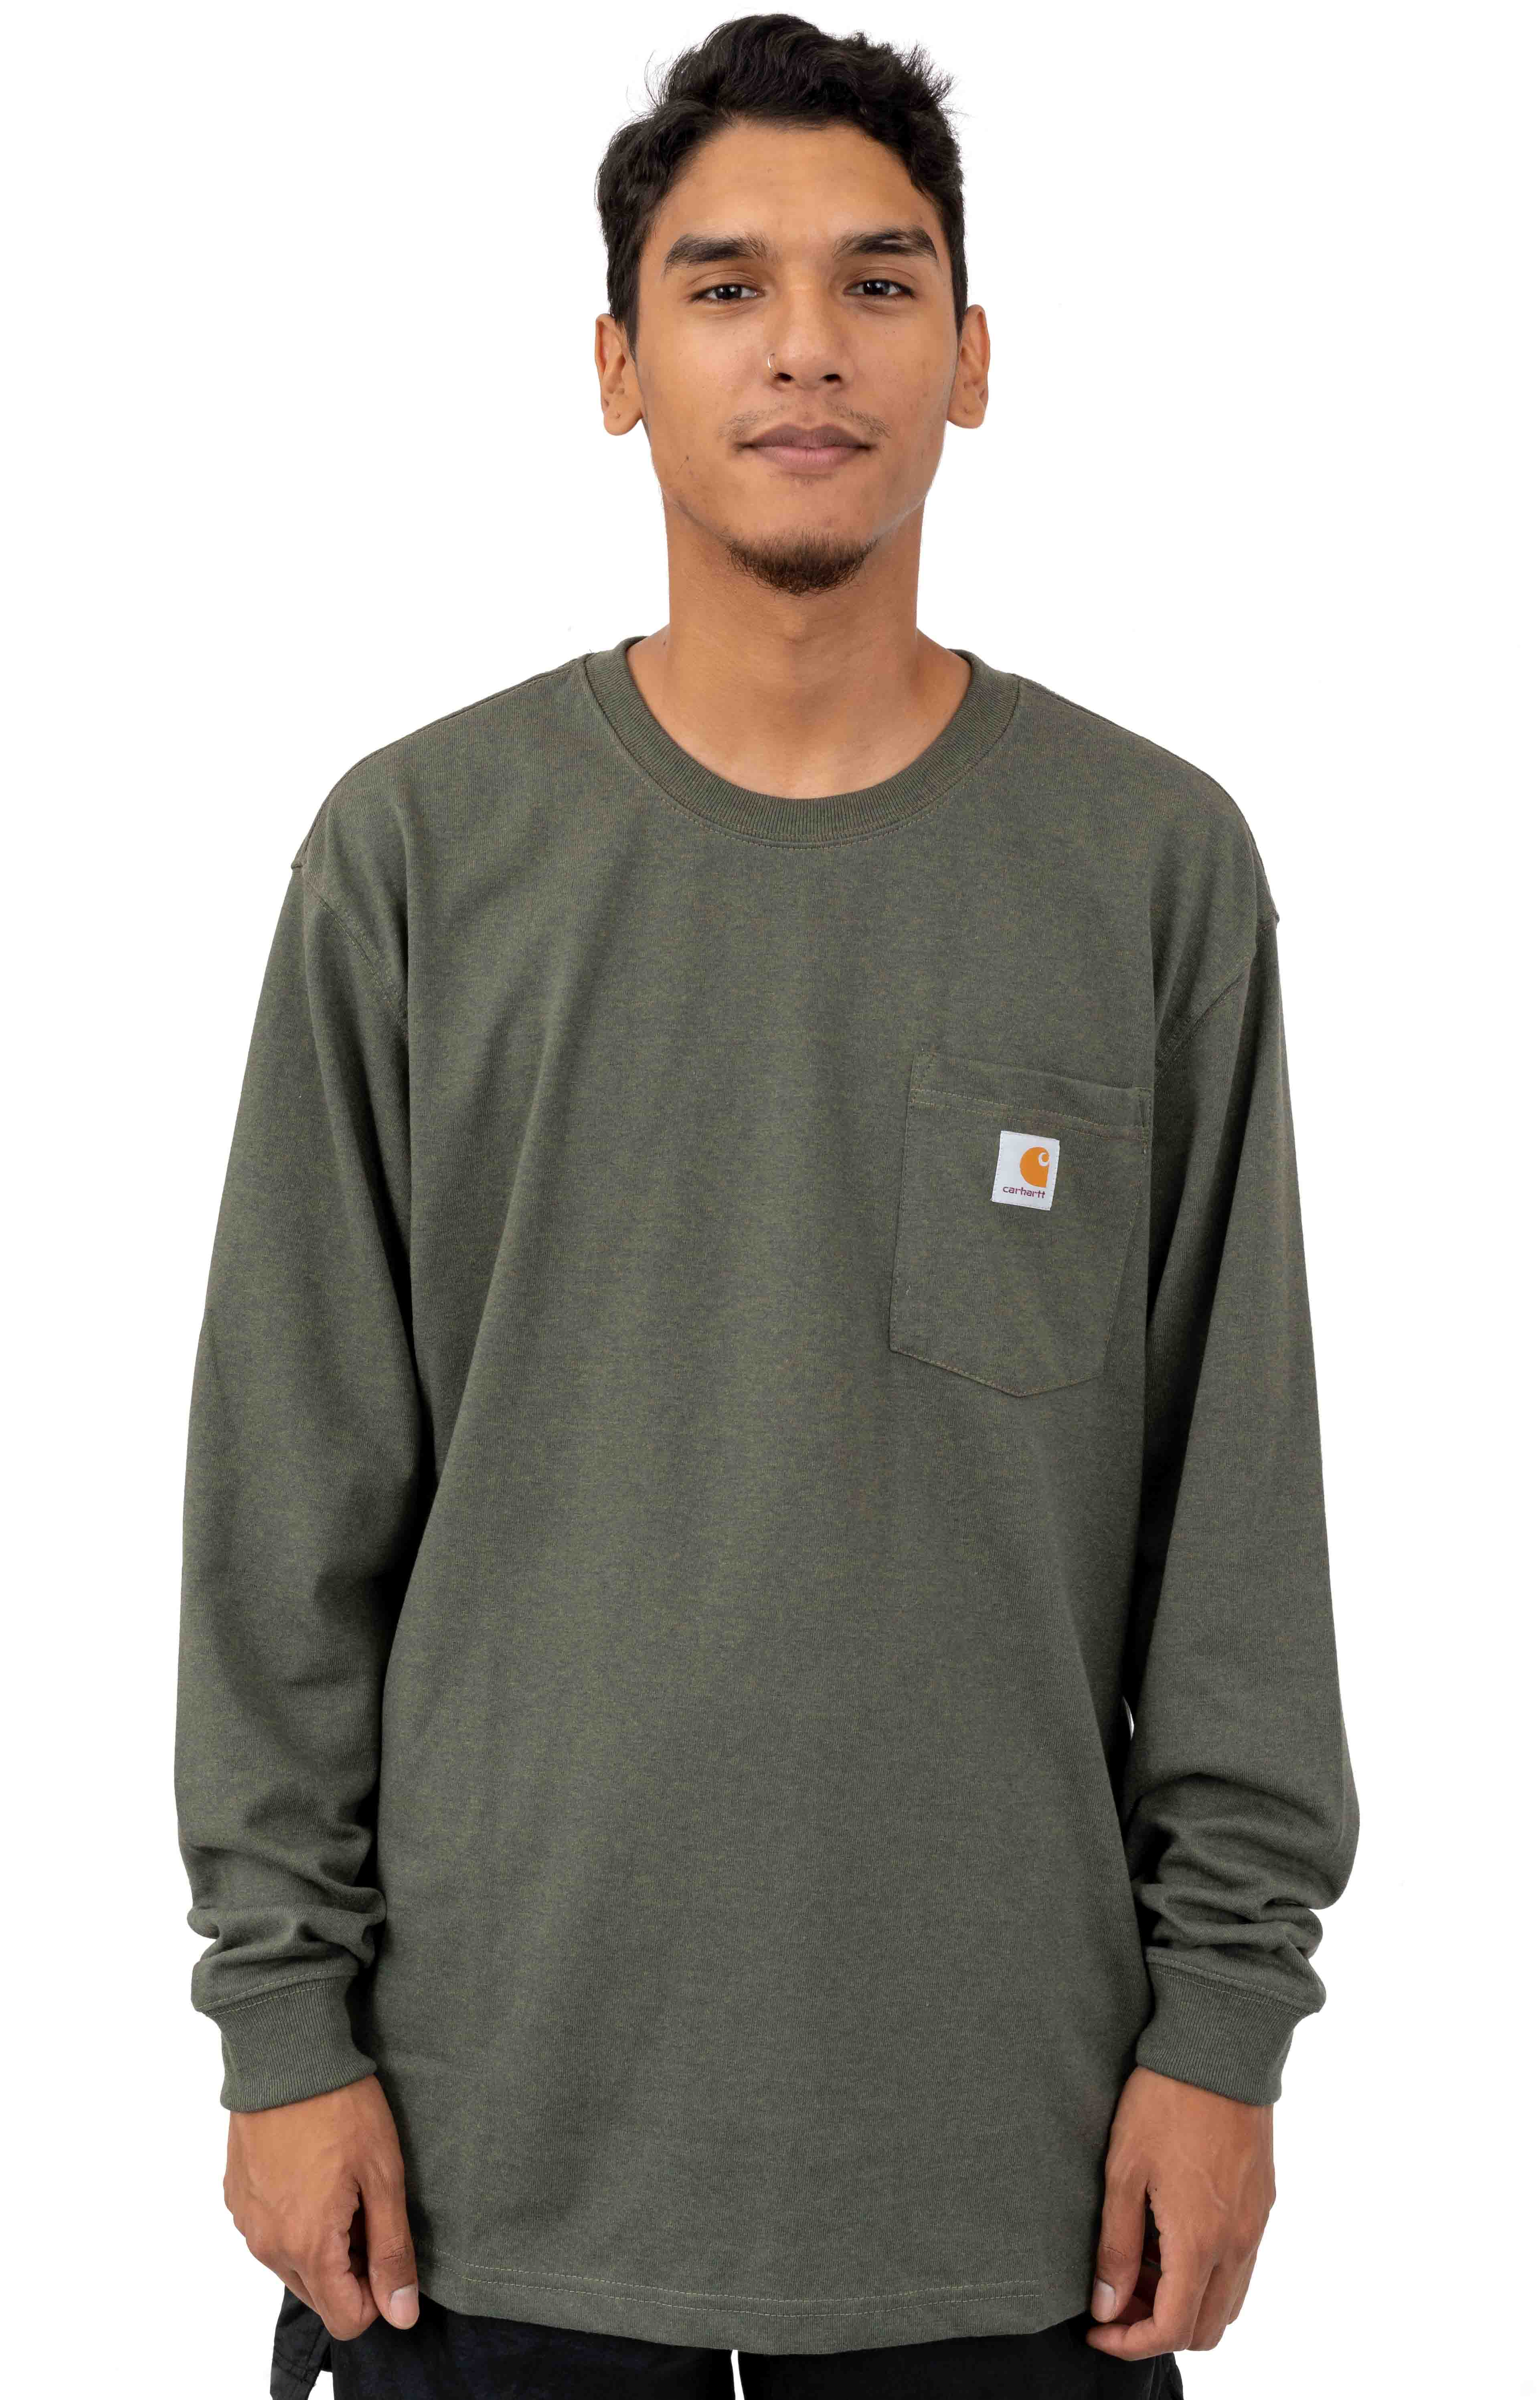 (K126) L/S Workwear Pocket Shirt - Olivine Heather